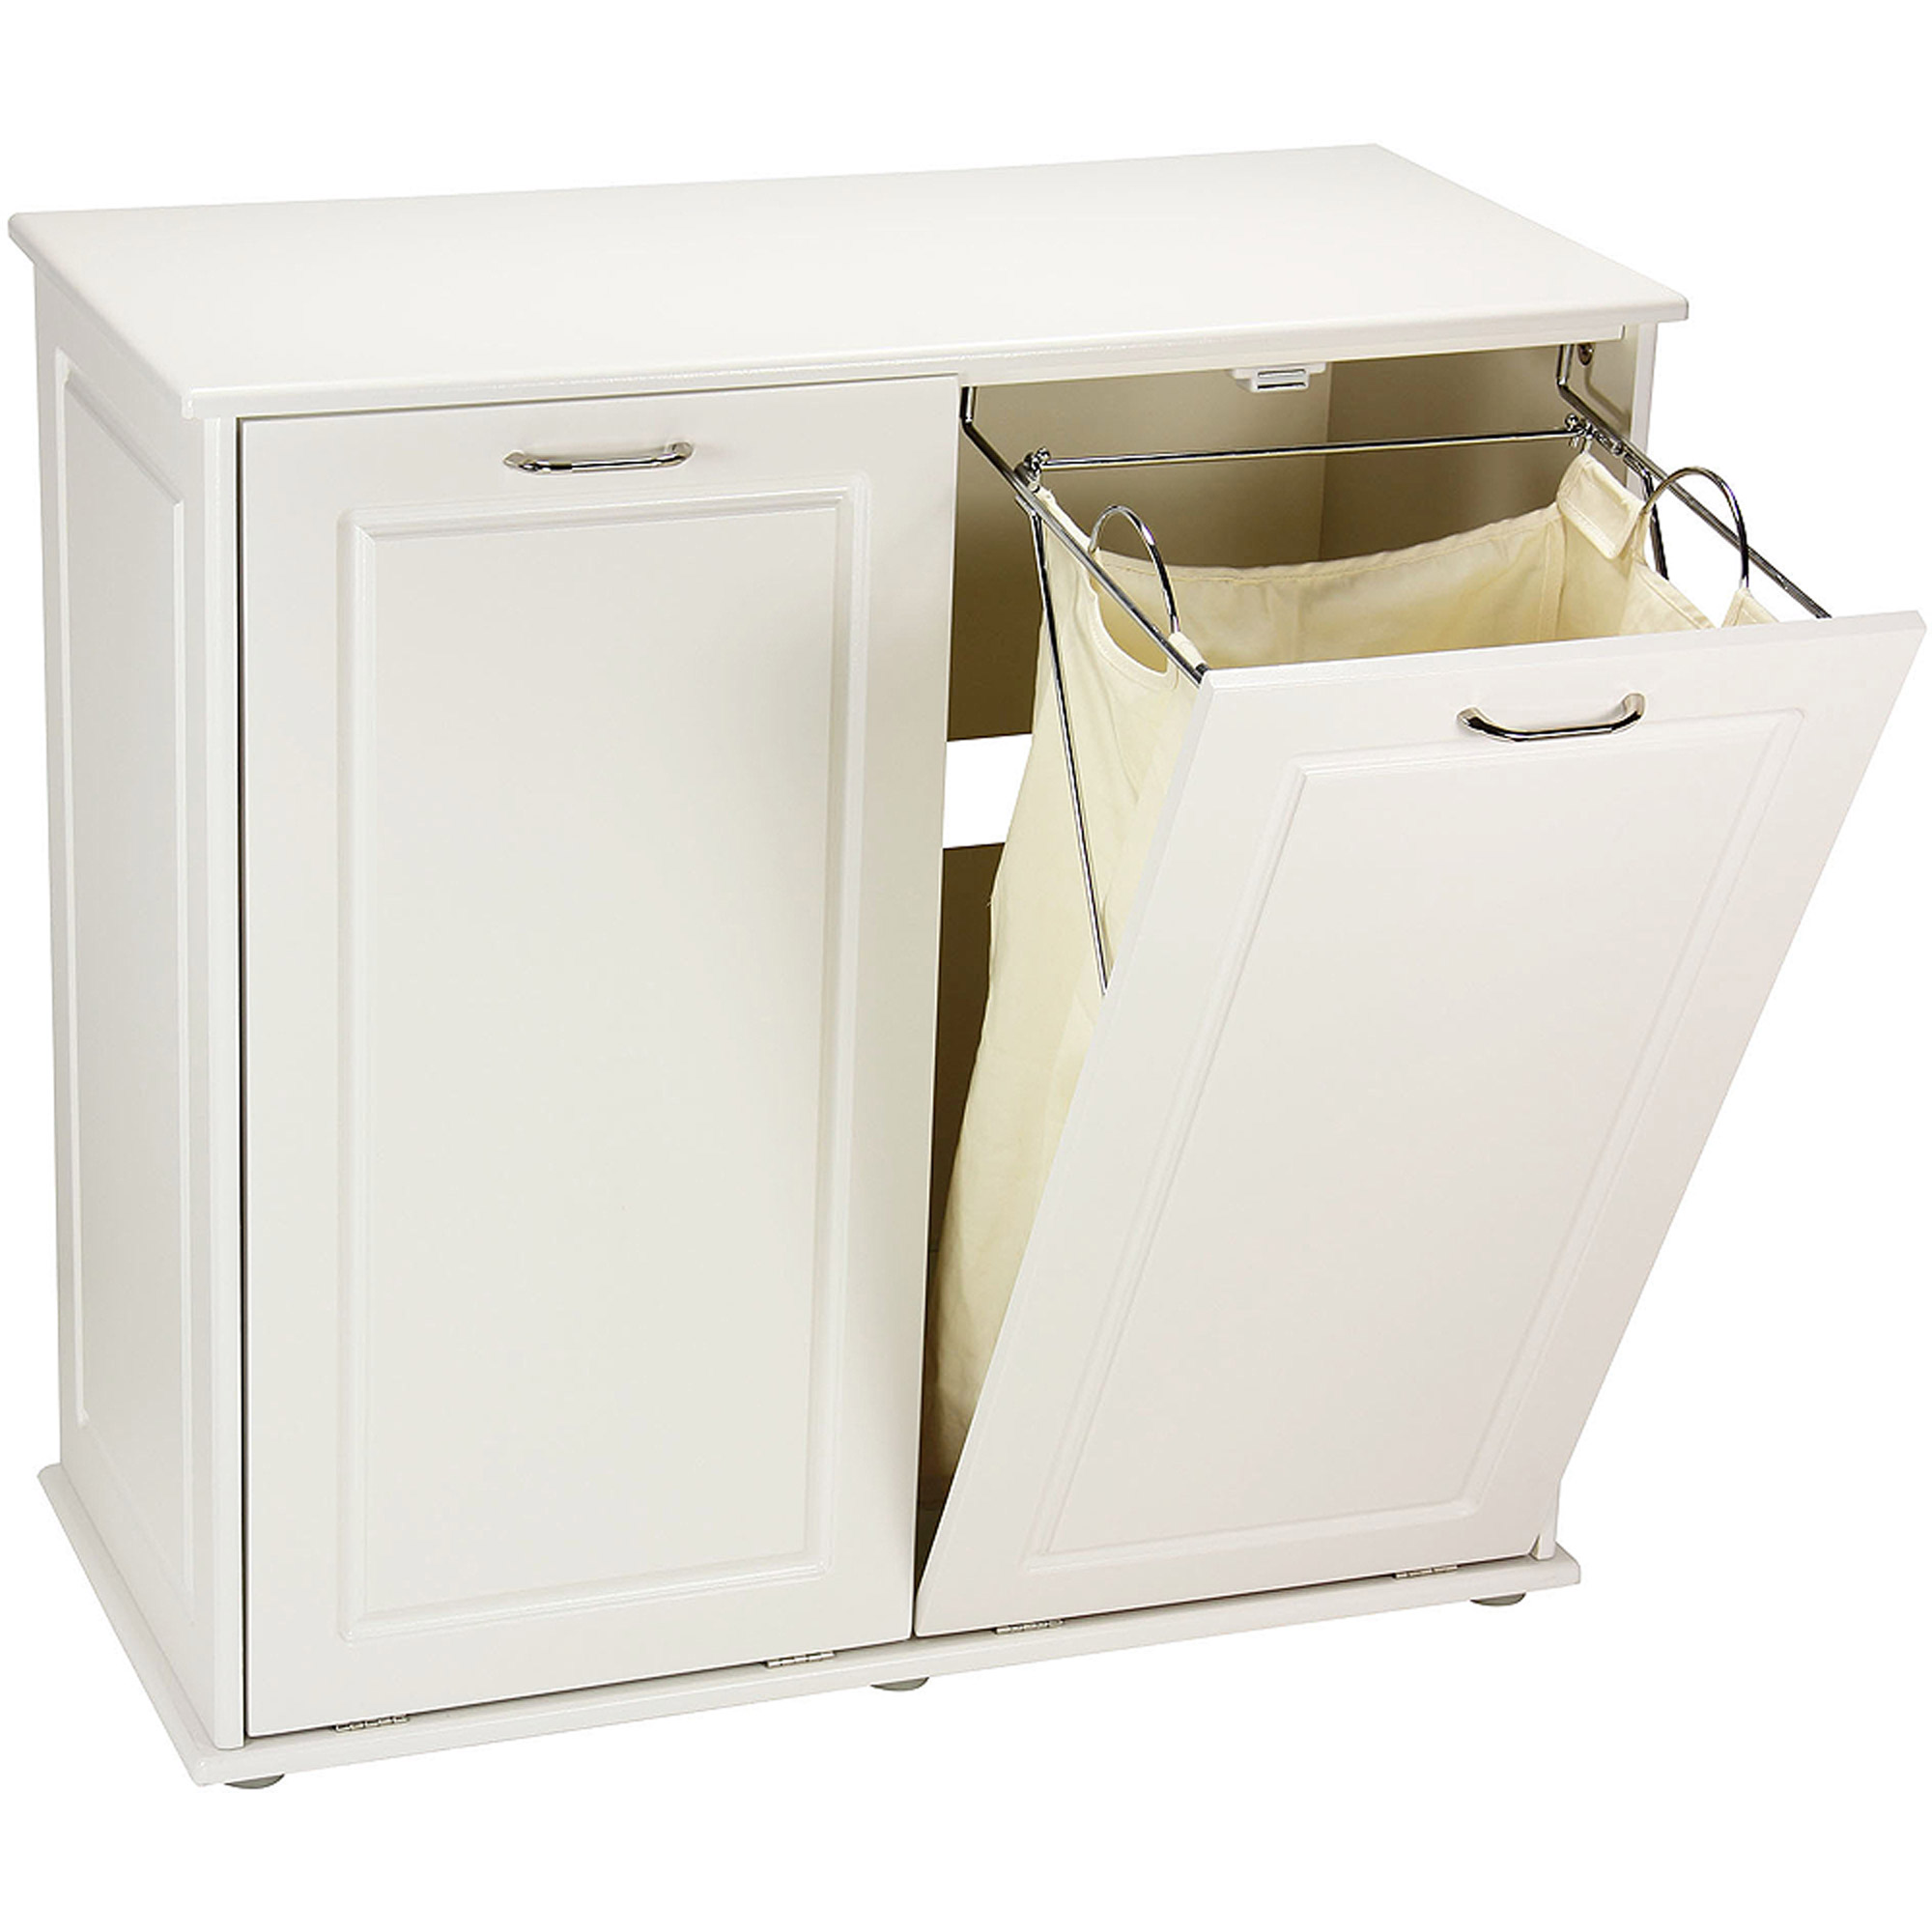 Hamper cabinet tilt out seeshiningstars - Tilt laundry hamper ...